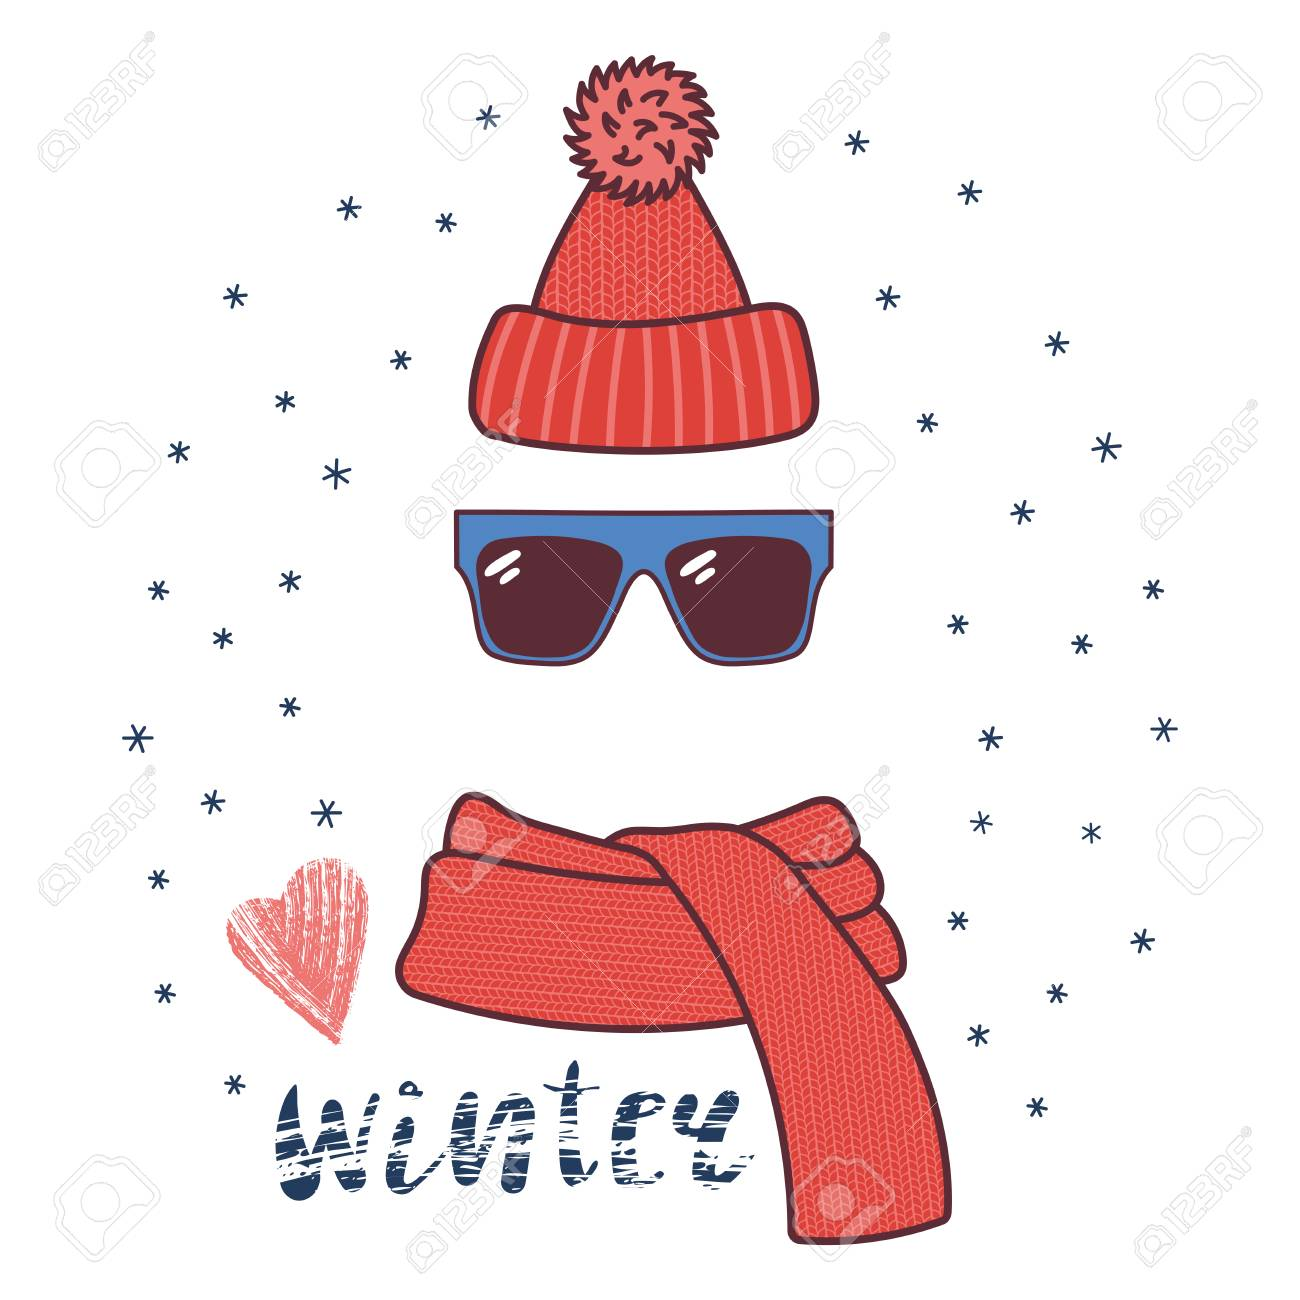 Hand Drawn Vector Illustration Of A Warm Funny Knitted Hat Sunglasses Royalty Free Cliparts Vectors And Stock Illustration Image 88919026